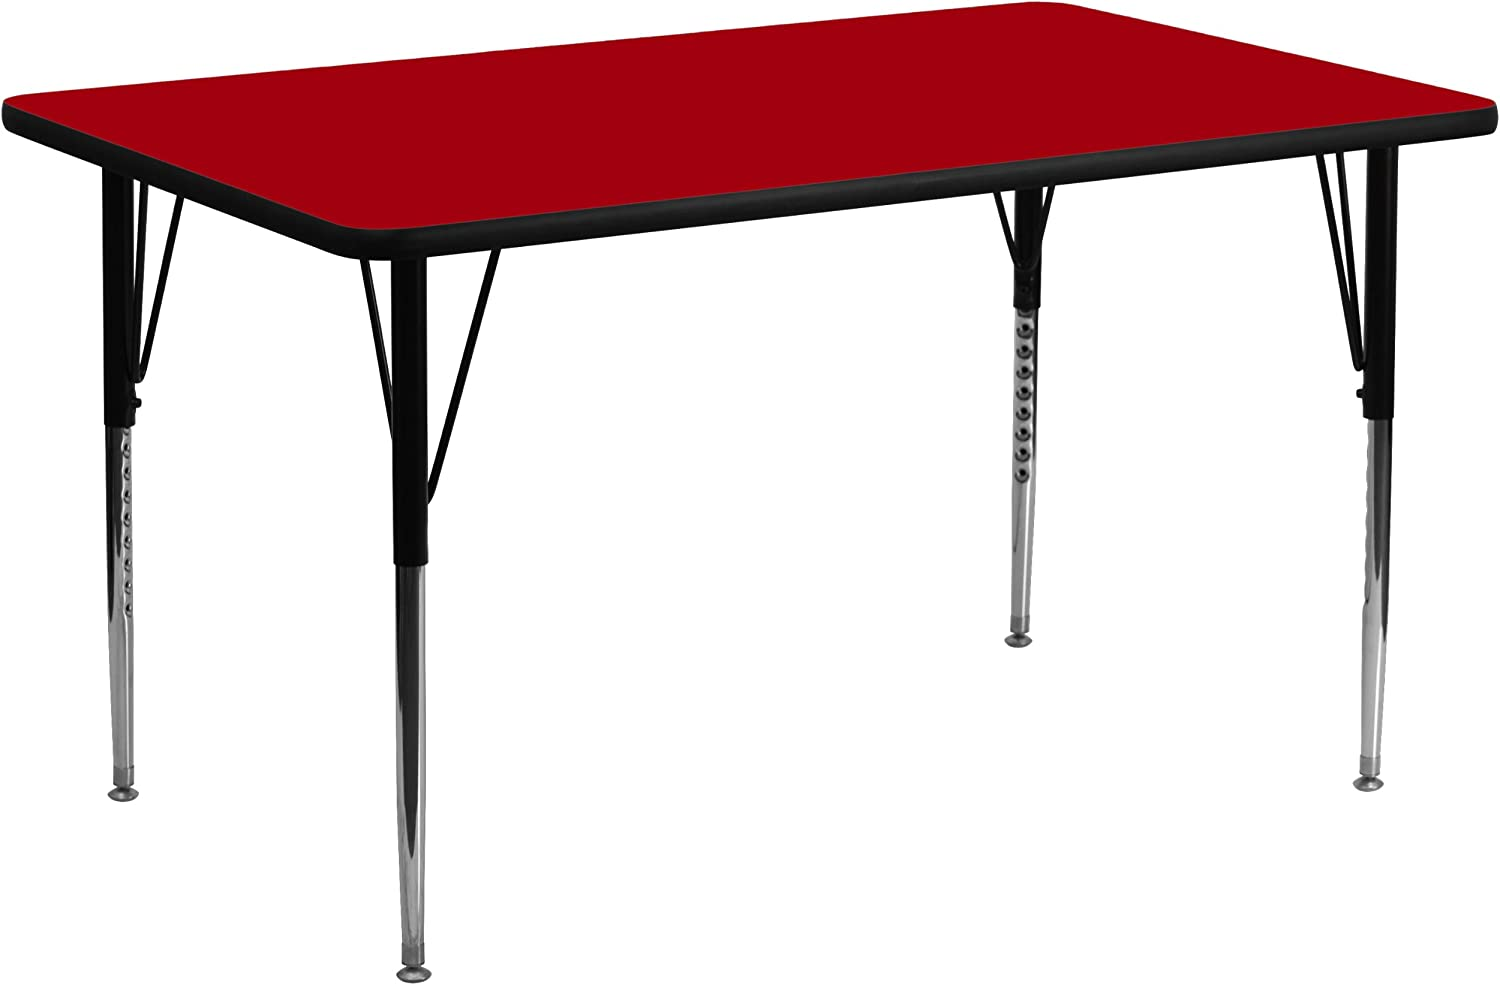 30''W x 72''L Rectangular Activity Table with Red Thermal Fused Laminate Top and Standard Height Adjustable Legs [XU-A3072-REC-RED-T-A-GG]